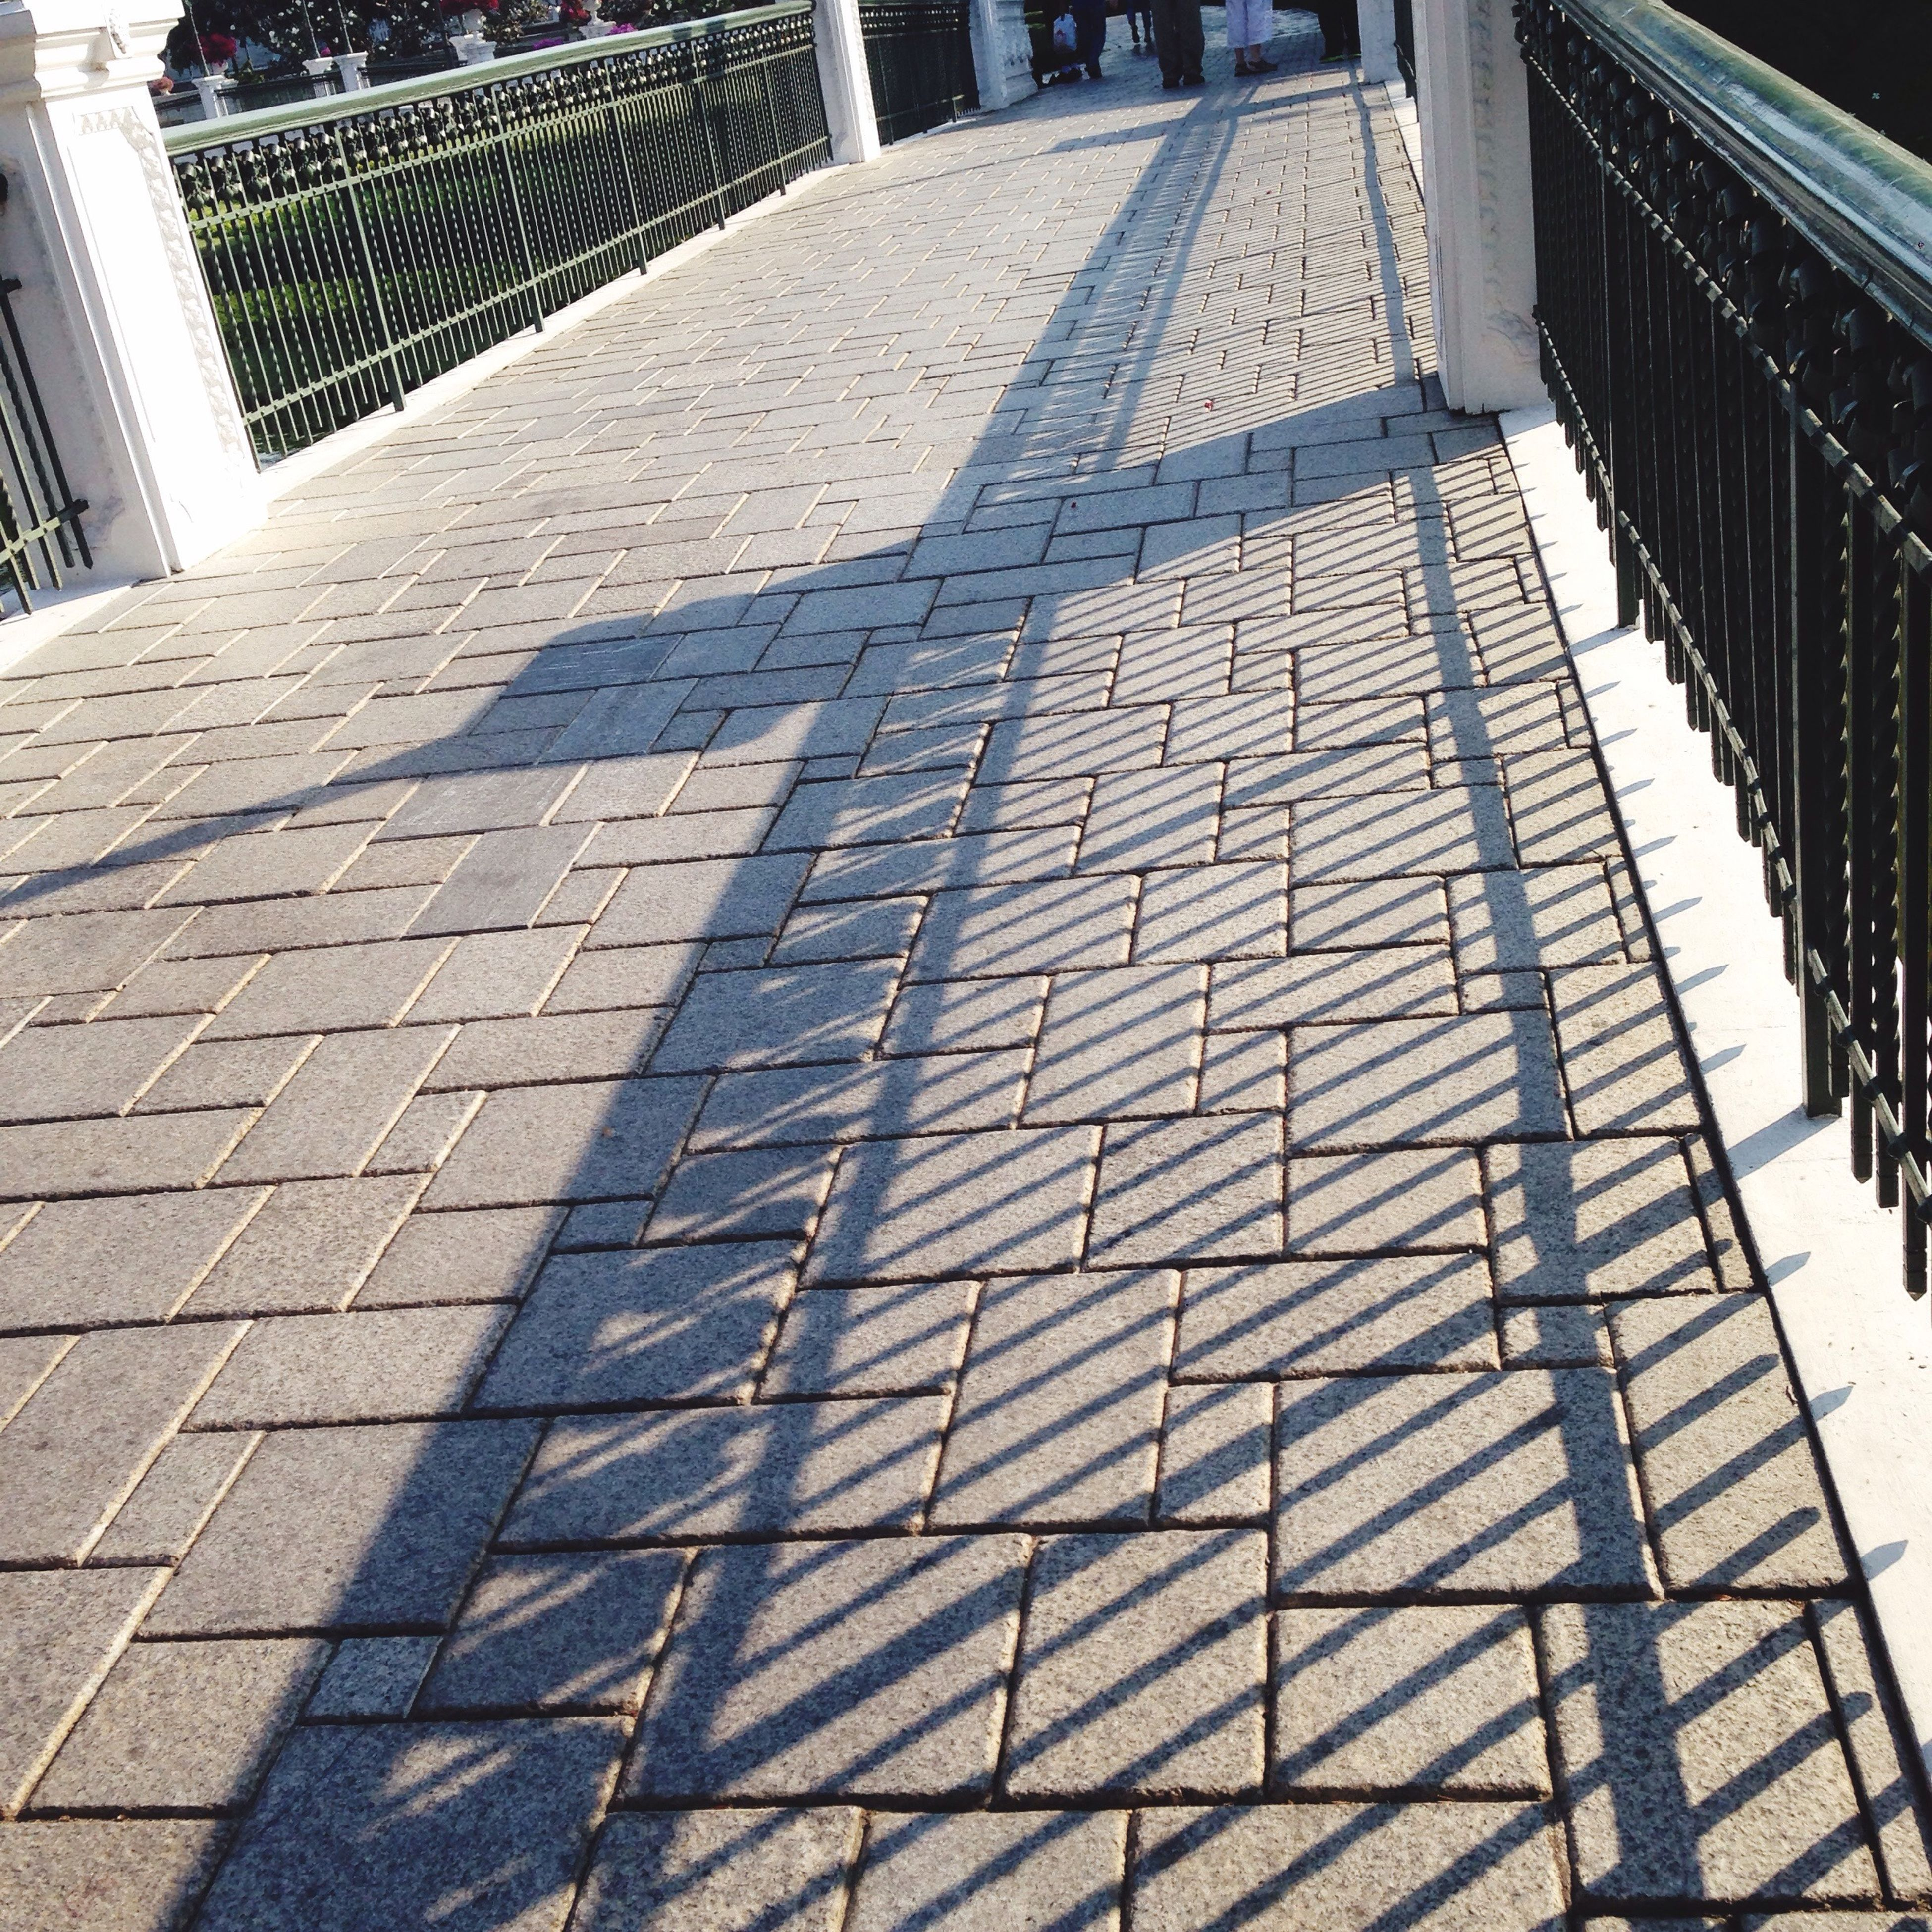 architecture, built structure, pattern, the way forward, diminishing perspective, shadow, sunlight, building exterior, walkway, cobblestone, footpath, paving stone, day, in a row, tiled floor, vanishing point, no people, outdoors, city, empty